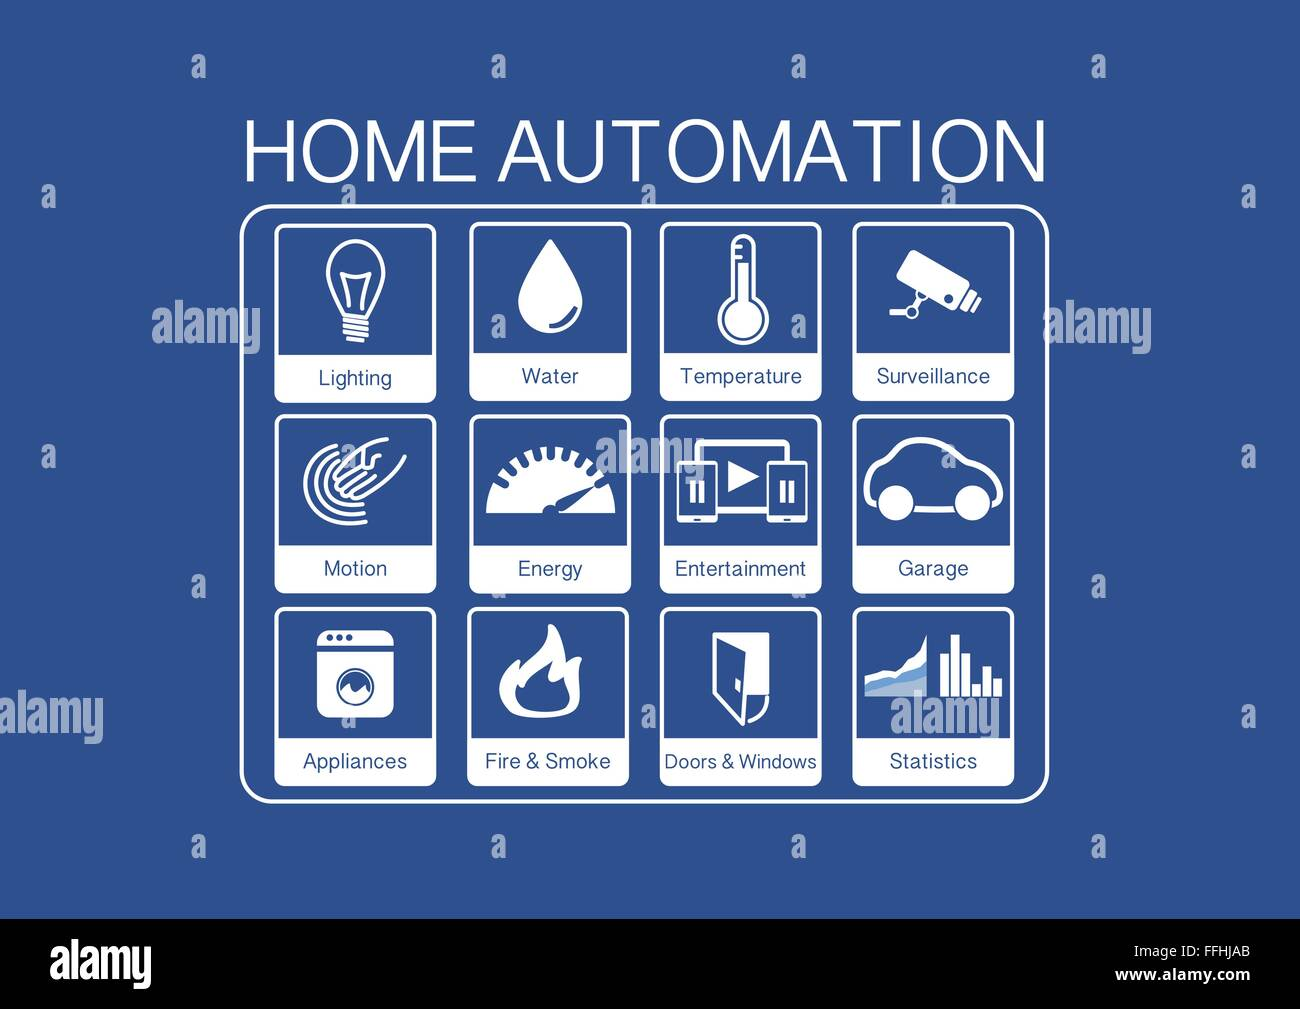 Light Automation Vector Icons For Home Automation To Control A Smart Home Like